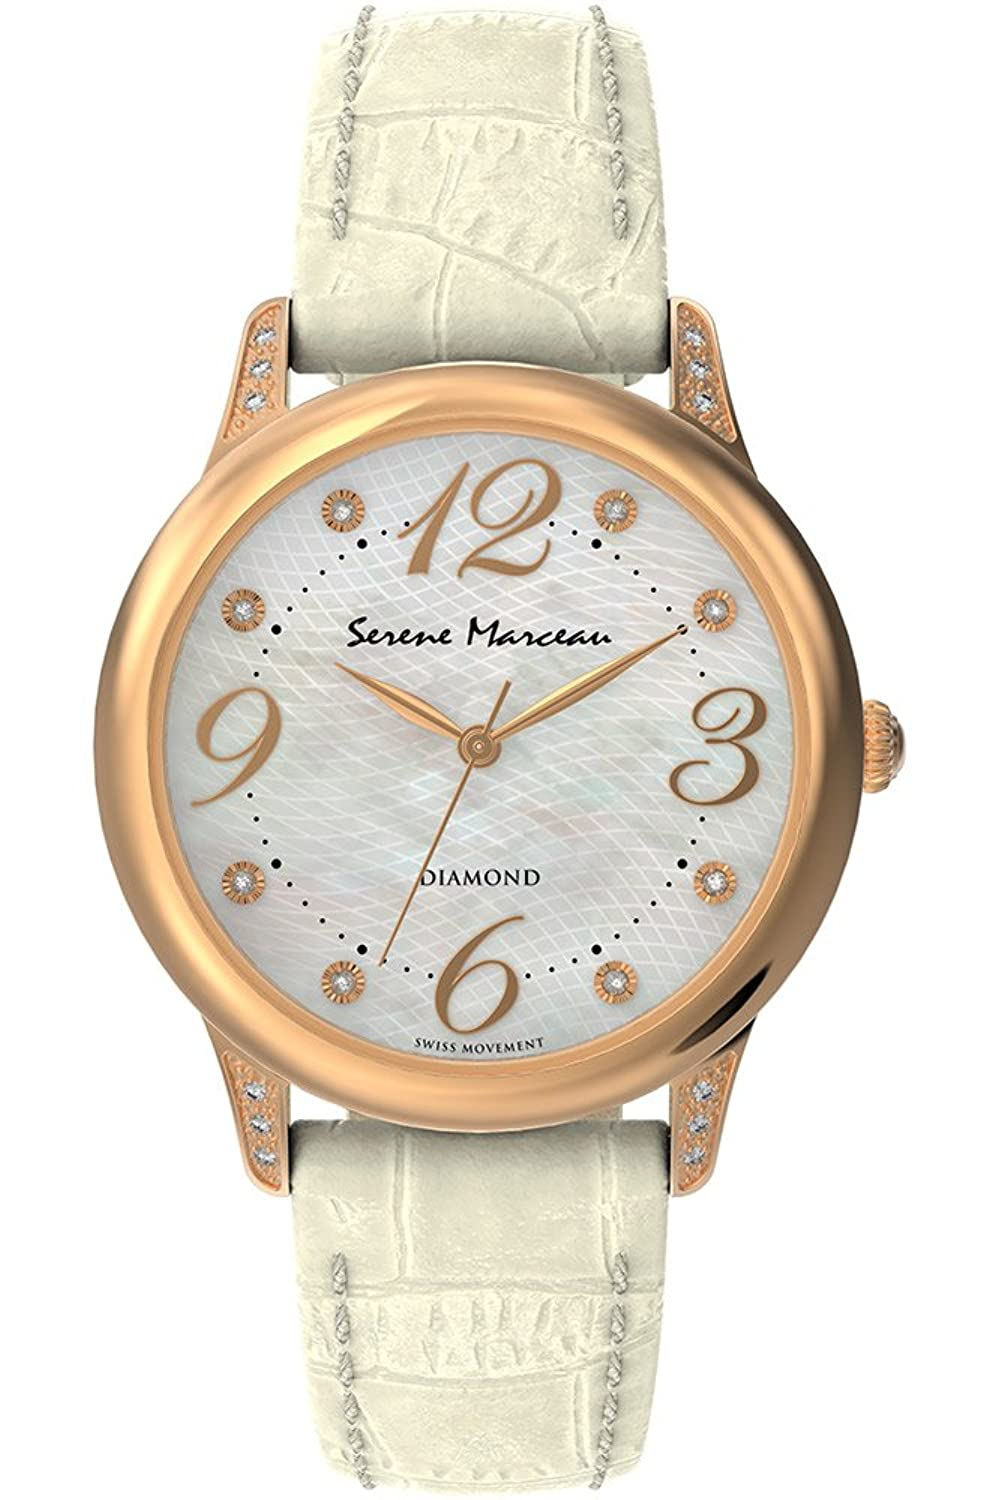 Damen armbanduhr Serene Marceau Diamond S009.09-IT